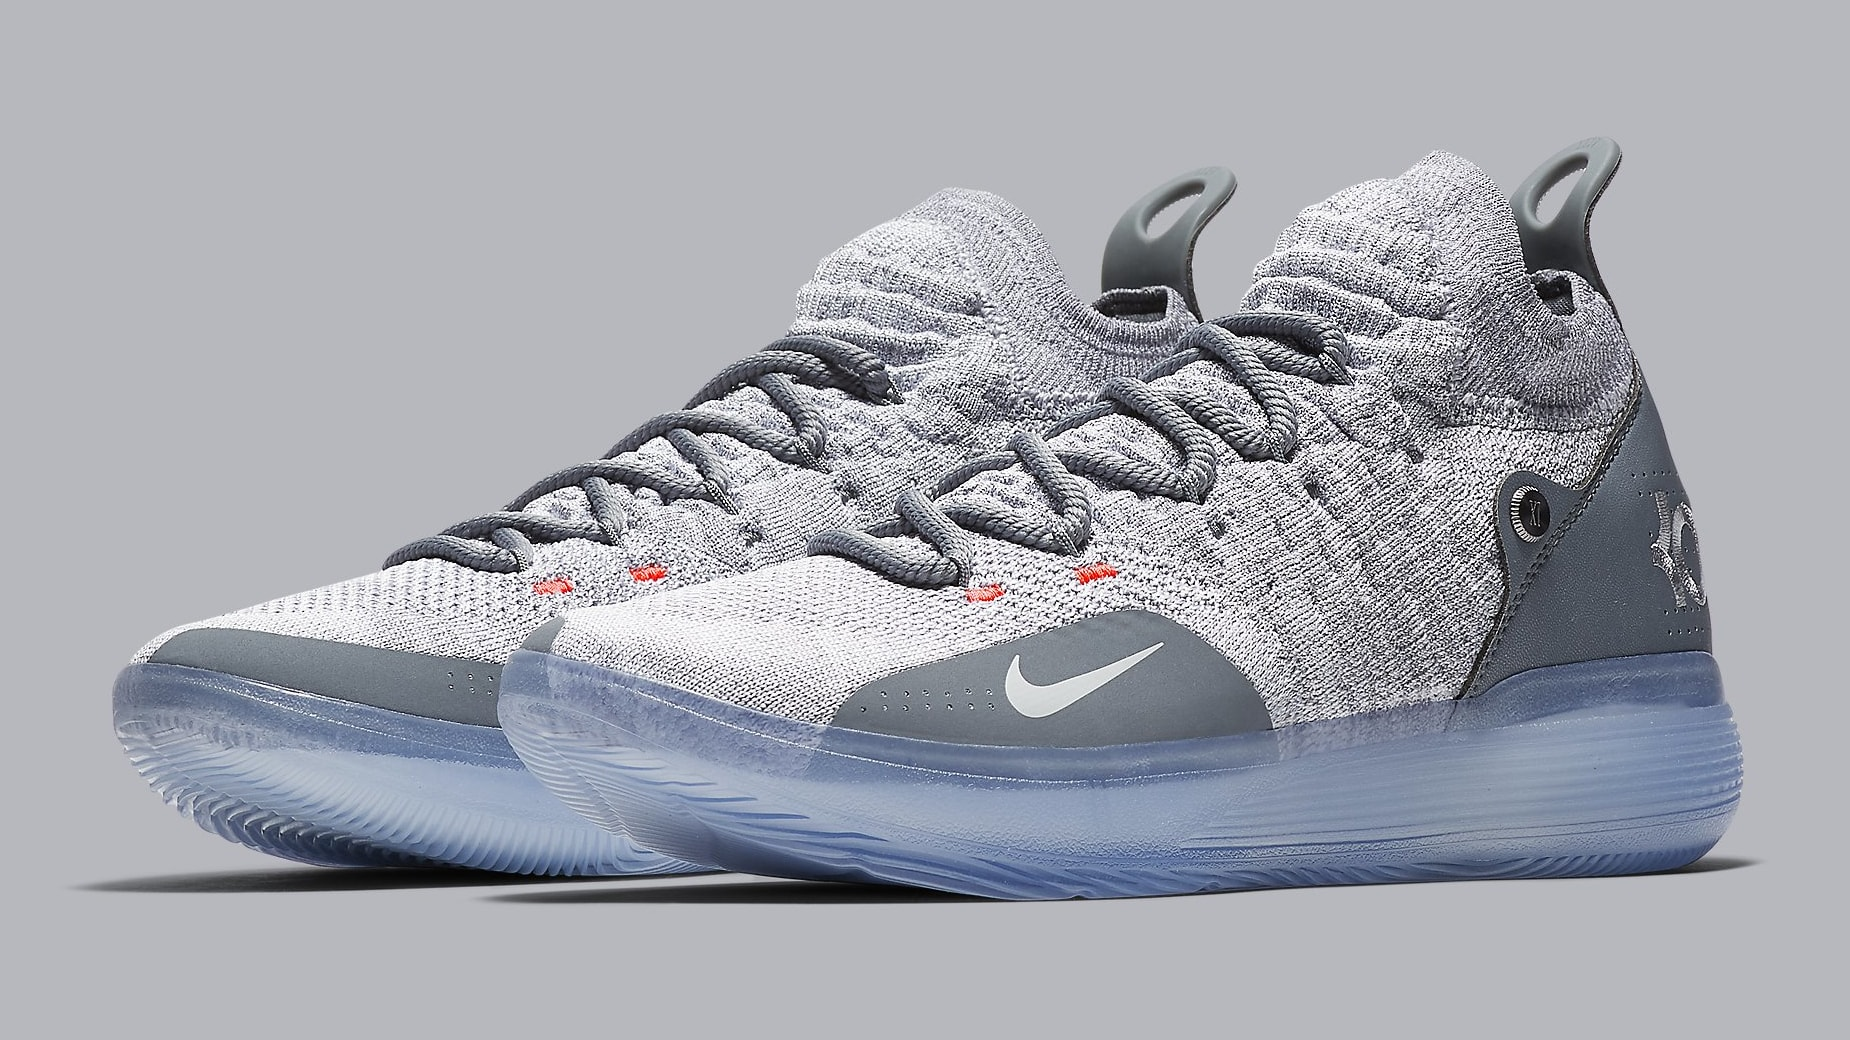 watch 79340 b4601 Image result for nike kd 11 cool grey